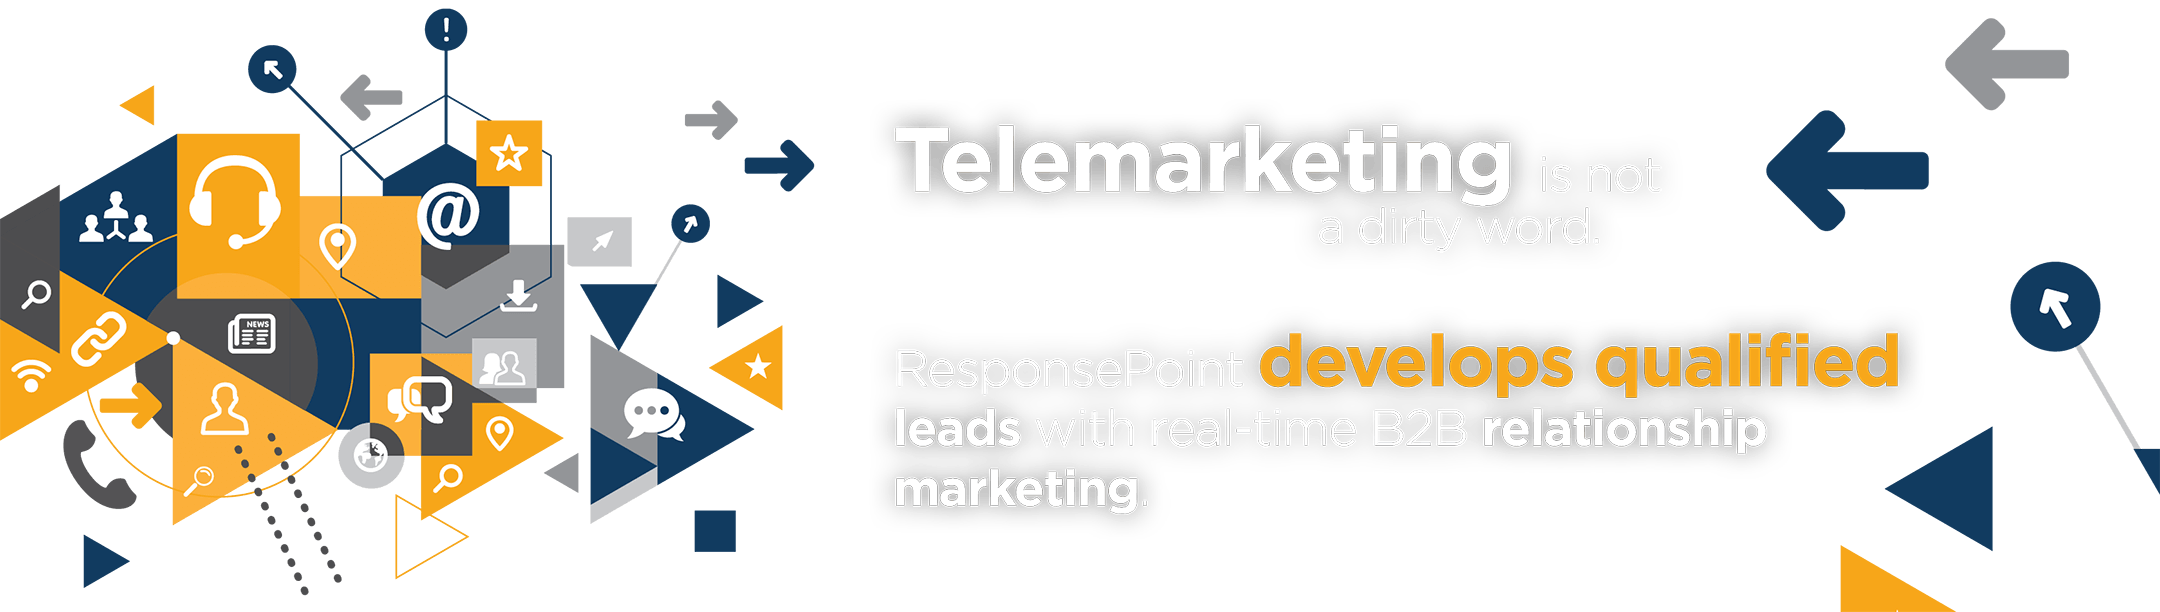 Telemarketing is not a dirty word. ResponsePoint develops qualified leads with real-time B2B relationship marketing.